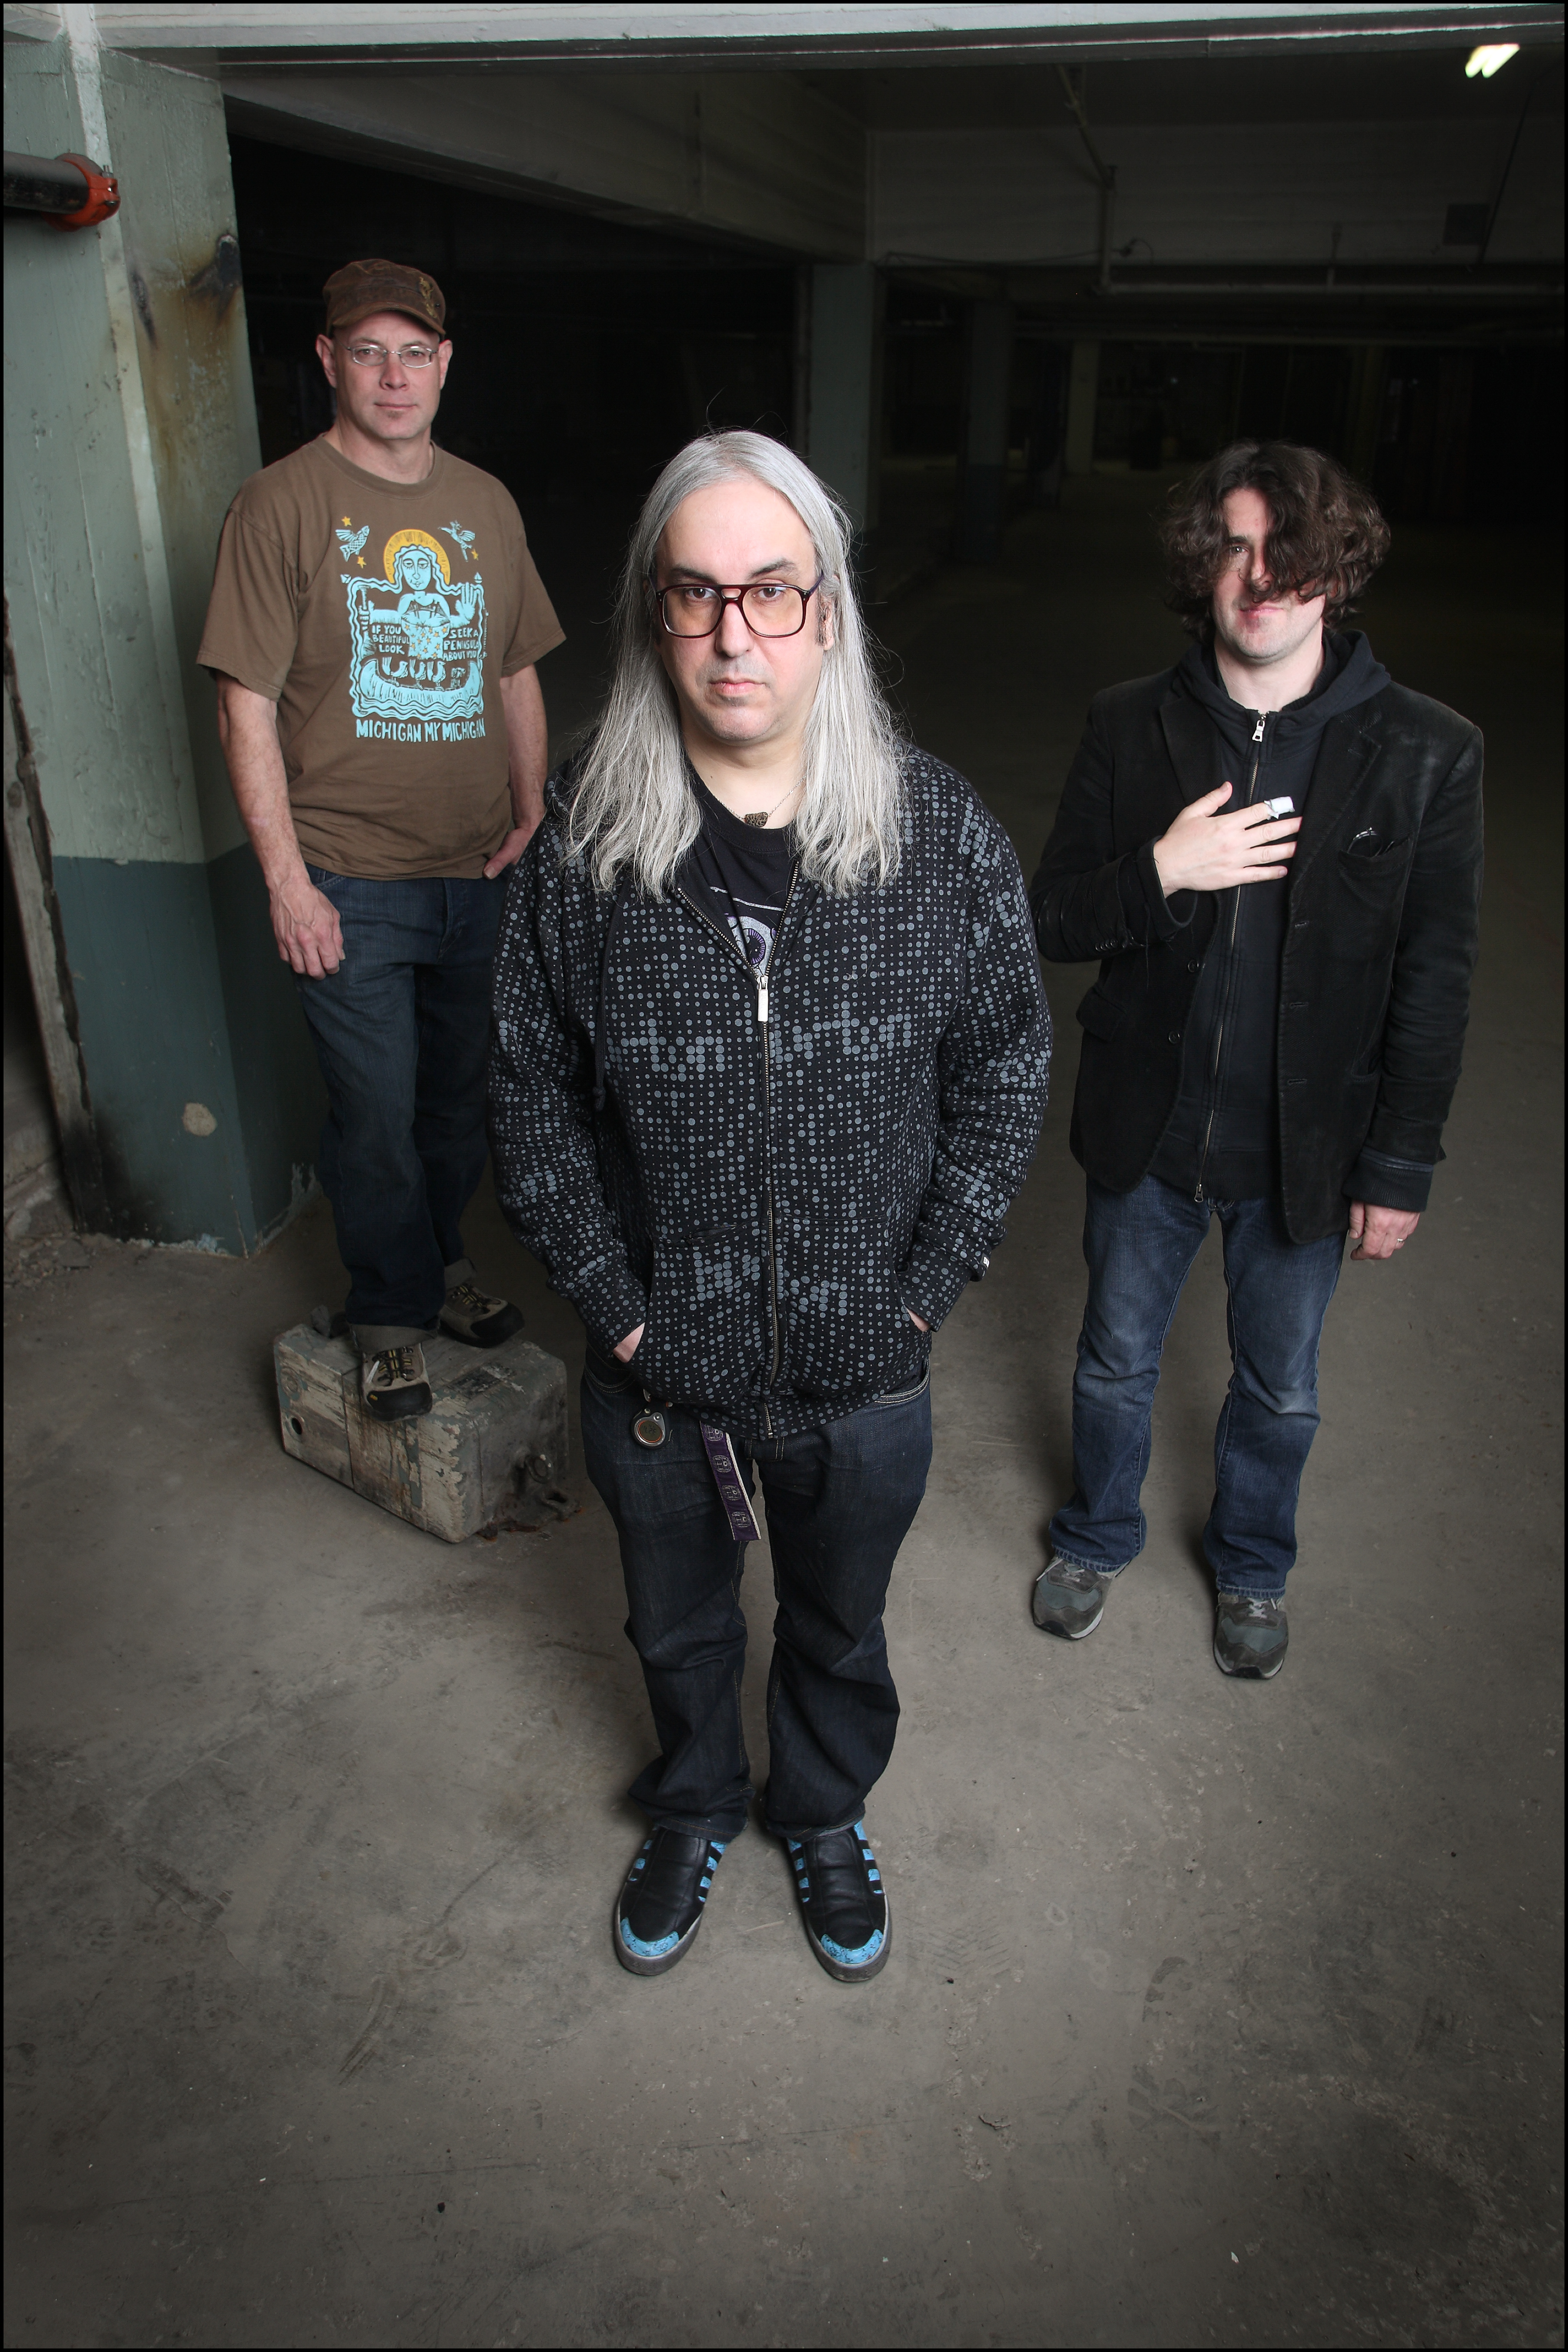 Dinosaur Jr announces fall North American tour dates in support of 'Farm'